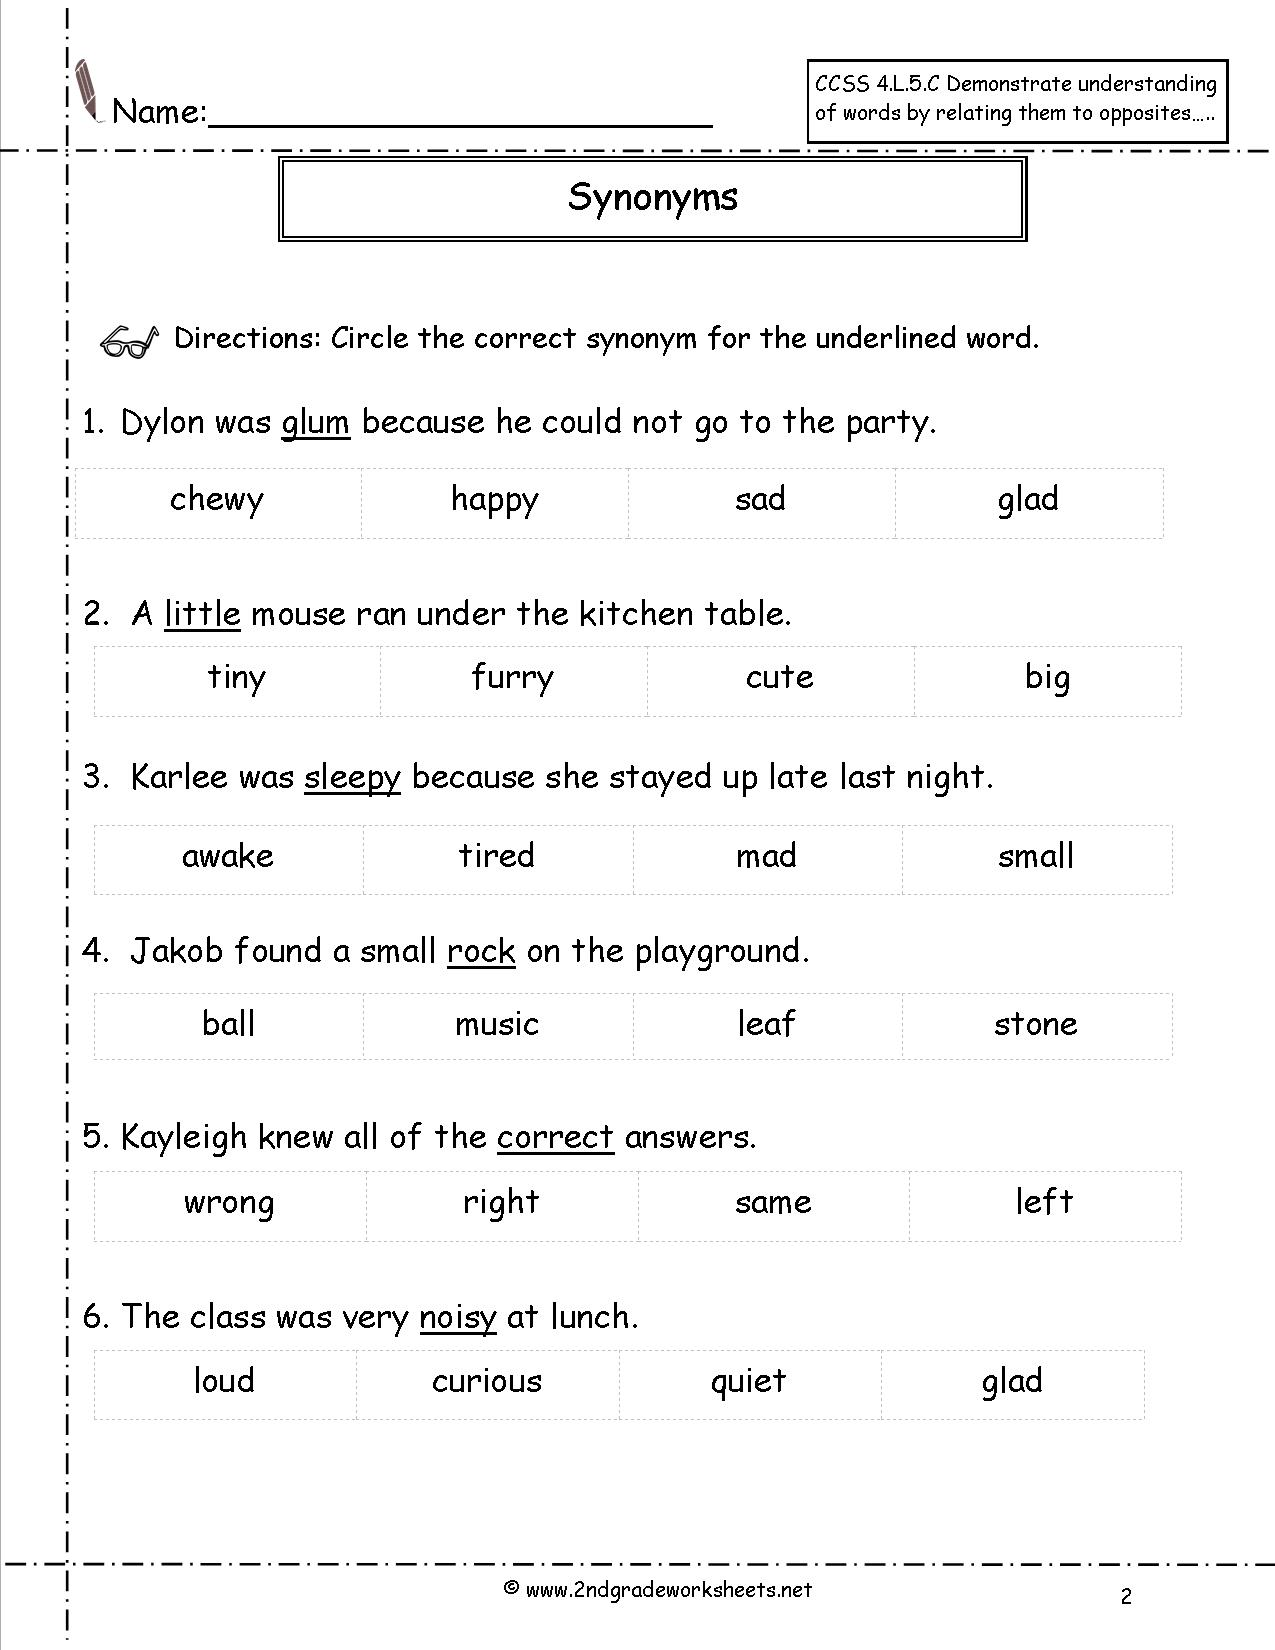 17 Best Images Of Antonyms Worksheets For First Grade